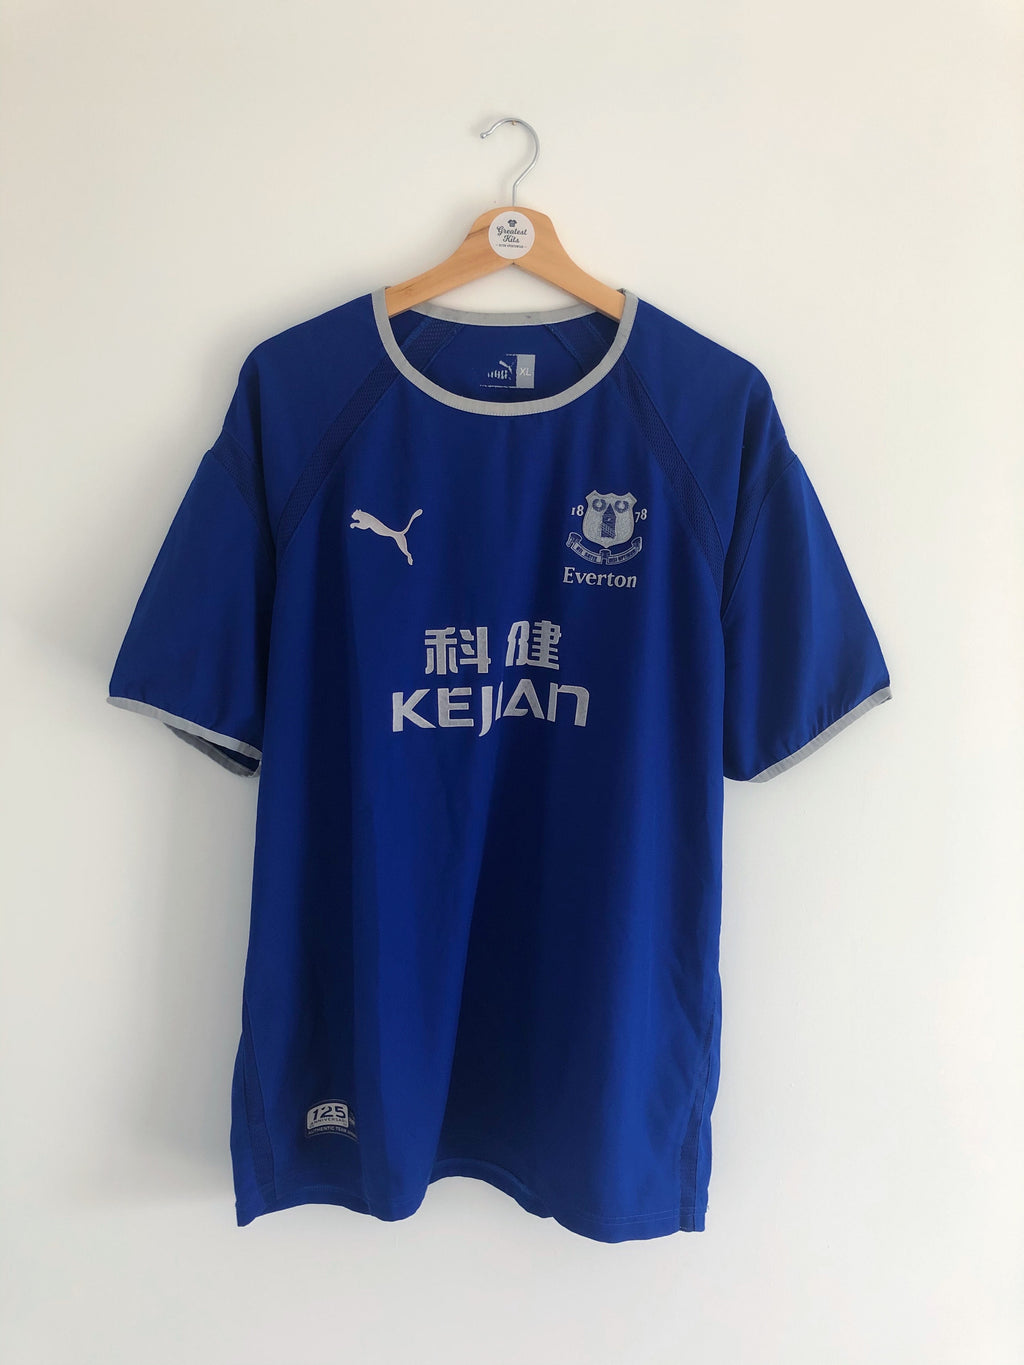 2003/04 Everton Home Shirt (XL) 8/10